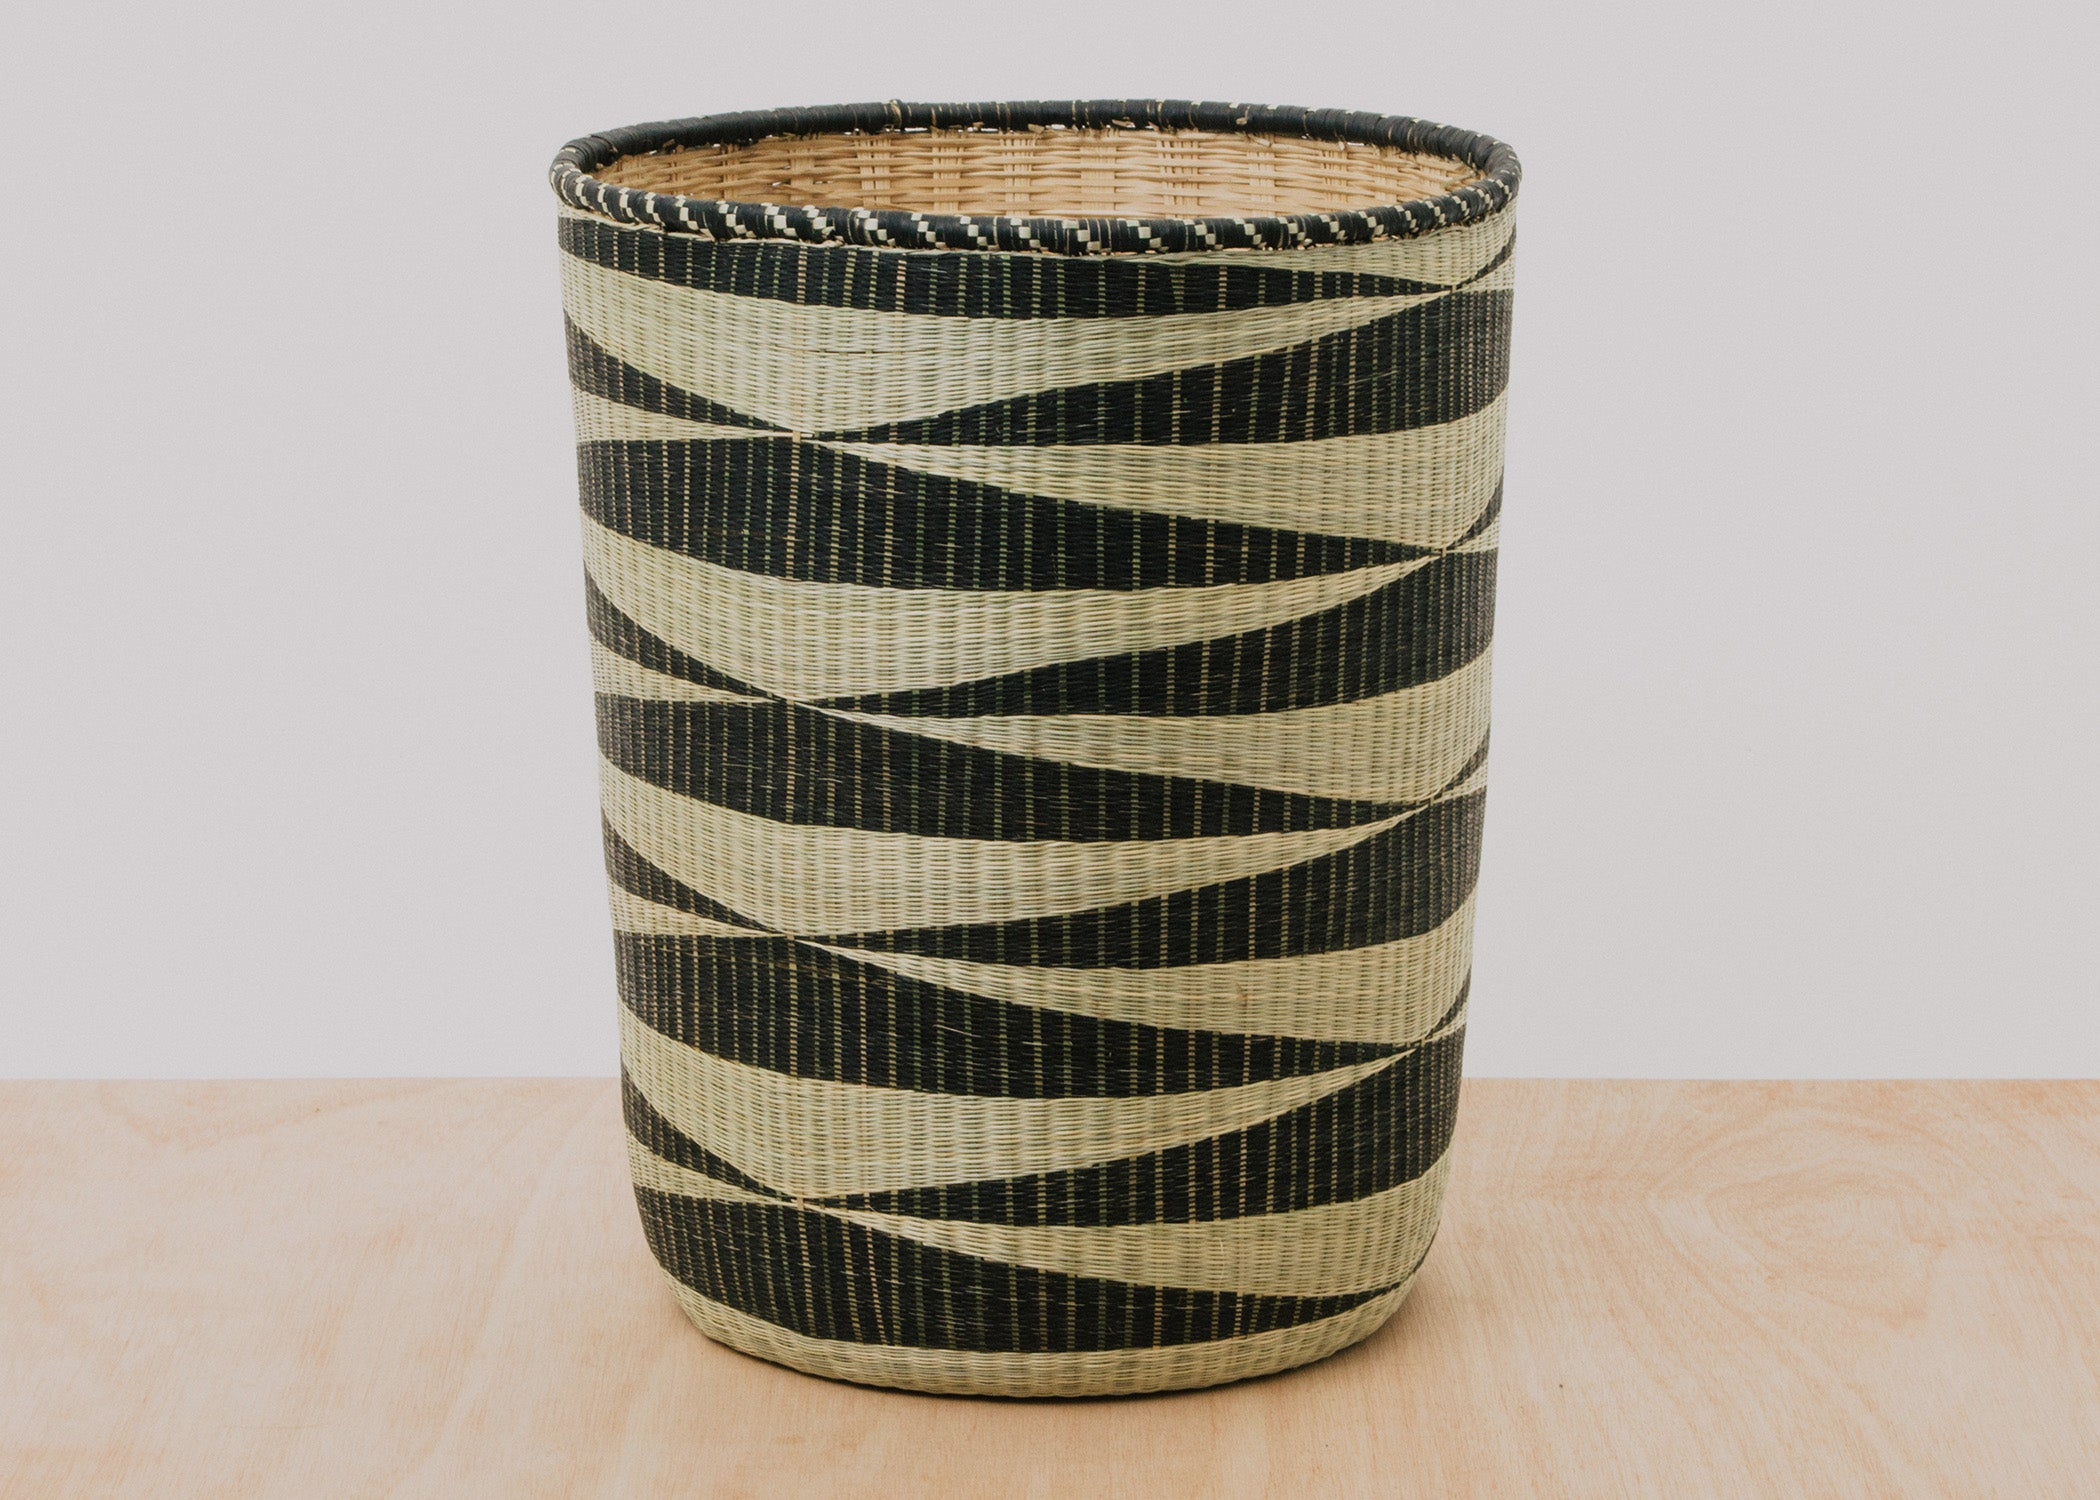 Huye Floor Basket I - KAZI - Artisan made high quality home decor and wall art